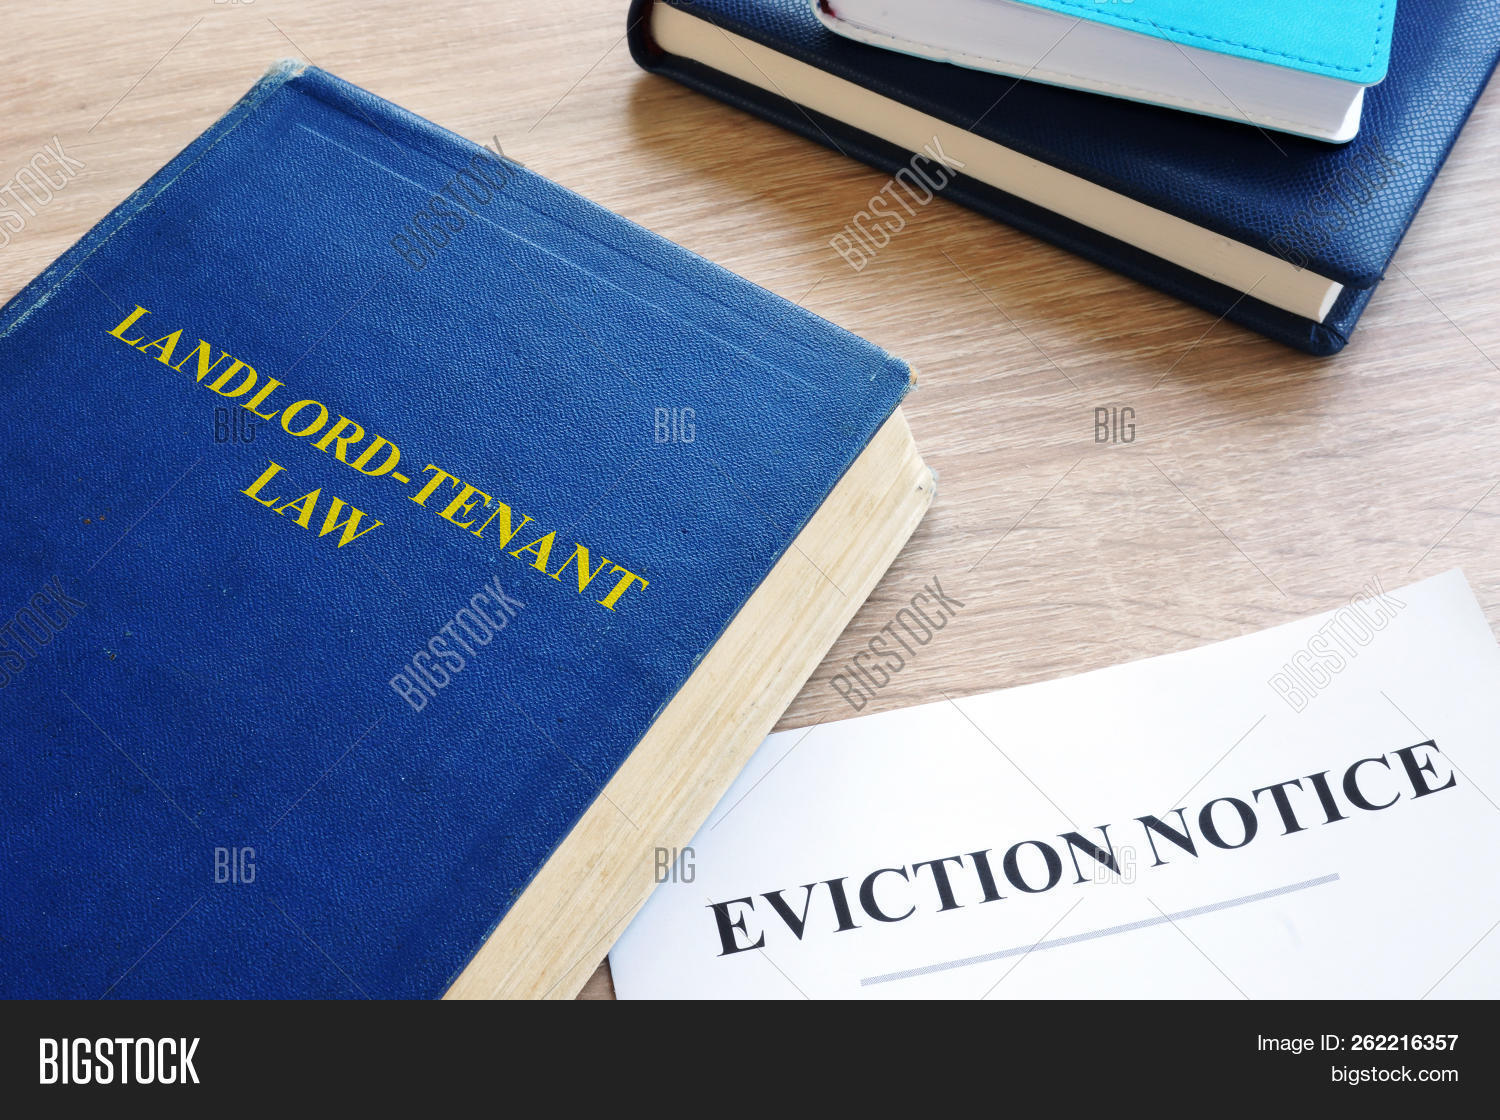 business,court,debt,document,estate,eviction,home,homeless,house,landlord,law,legal,note,notice,notification,order,paper,payment,possession,process,property,rent,tenant